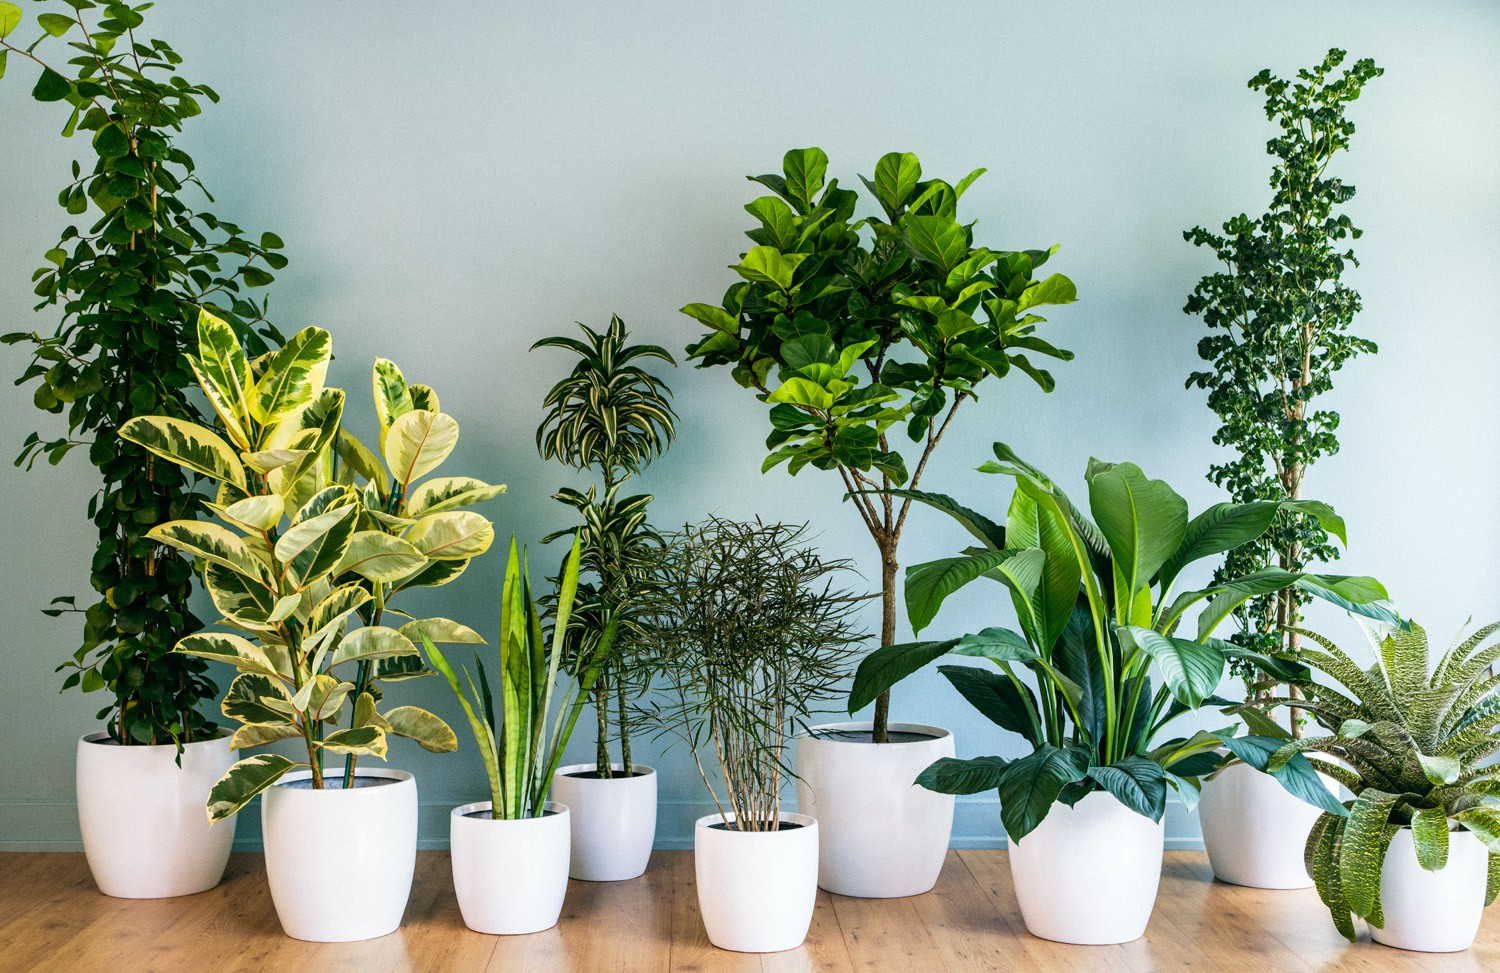 Houseplants A Breath of Fresh Air Houseplants